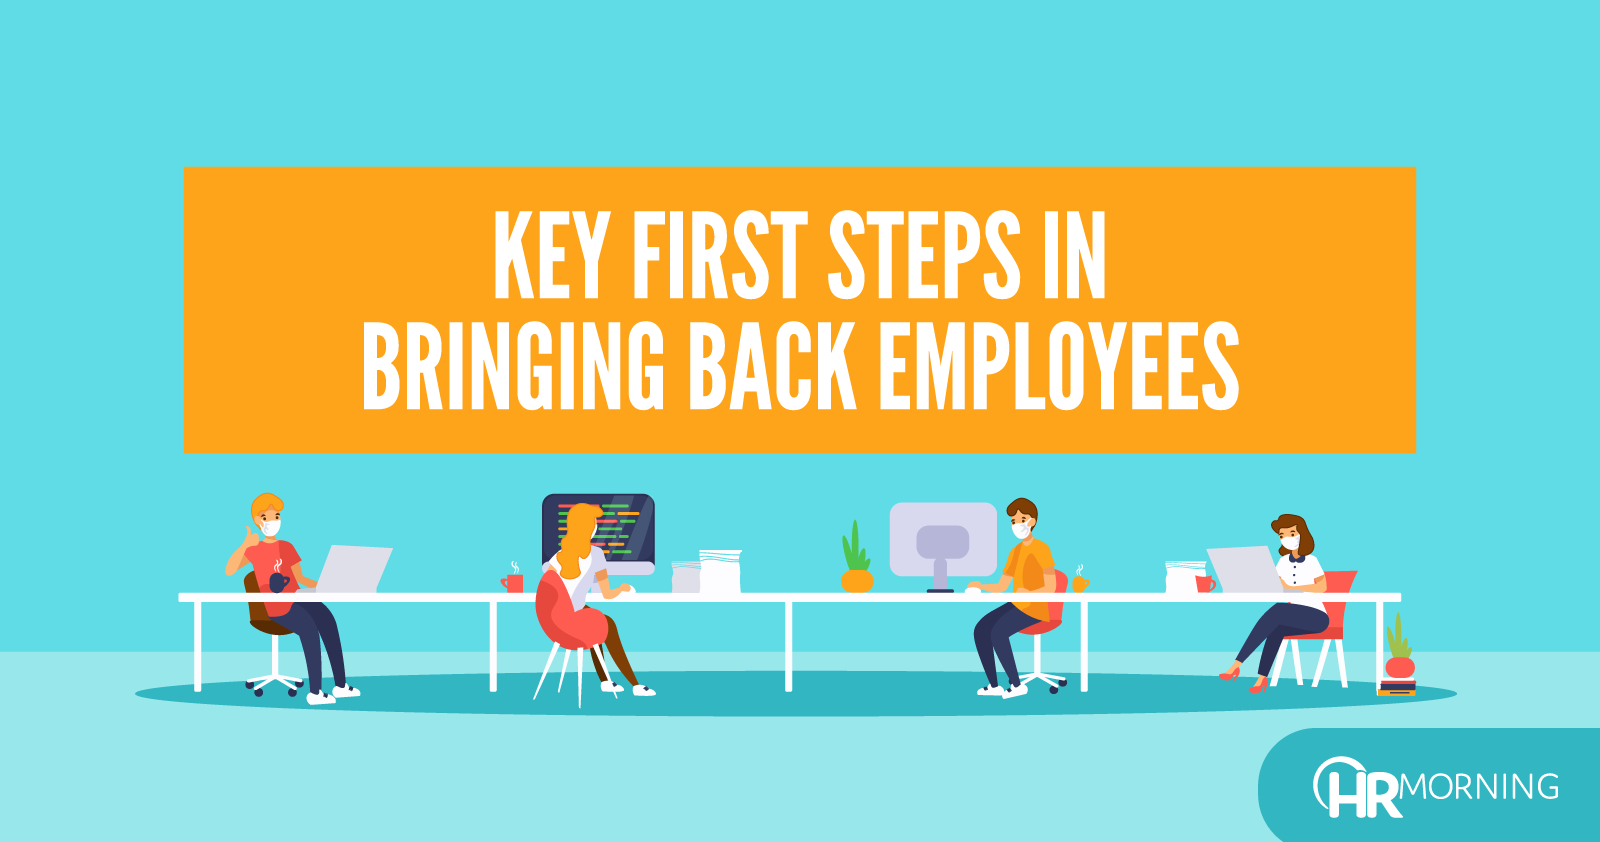 Key First Steps In Bringing Back Employees